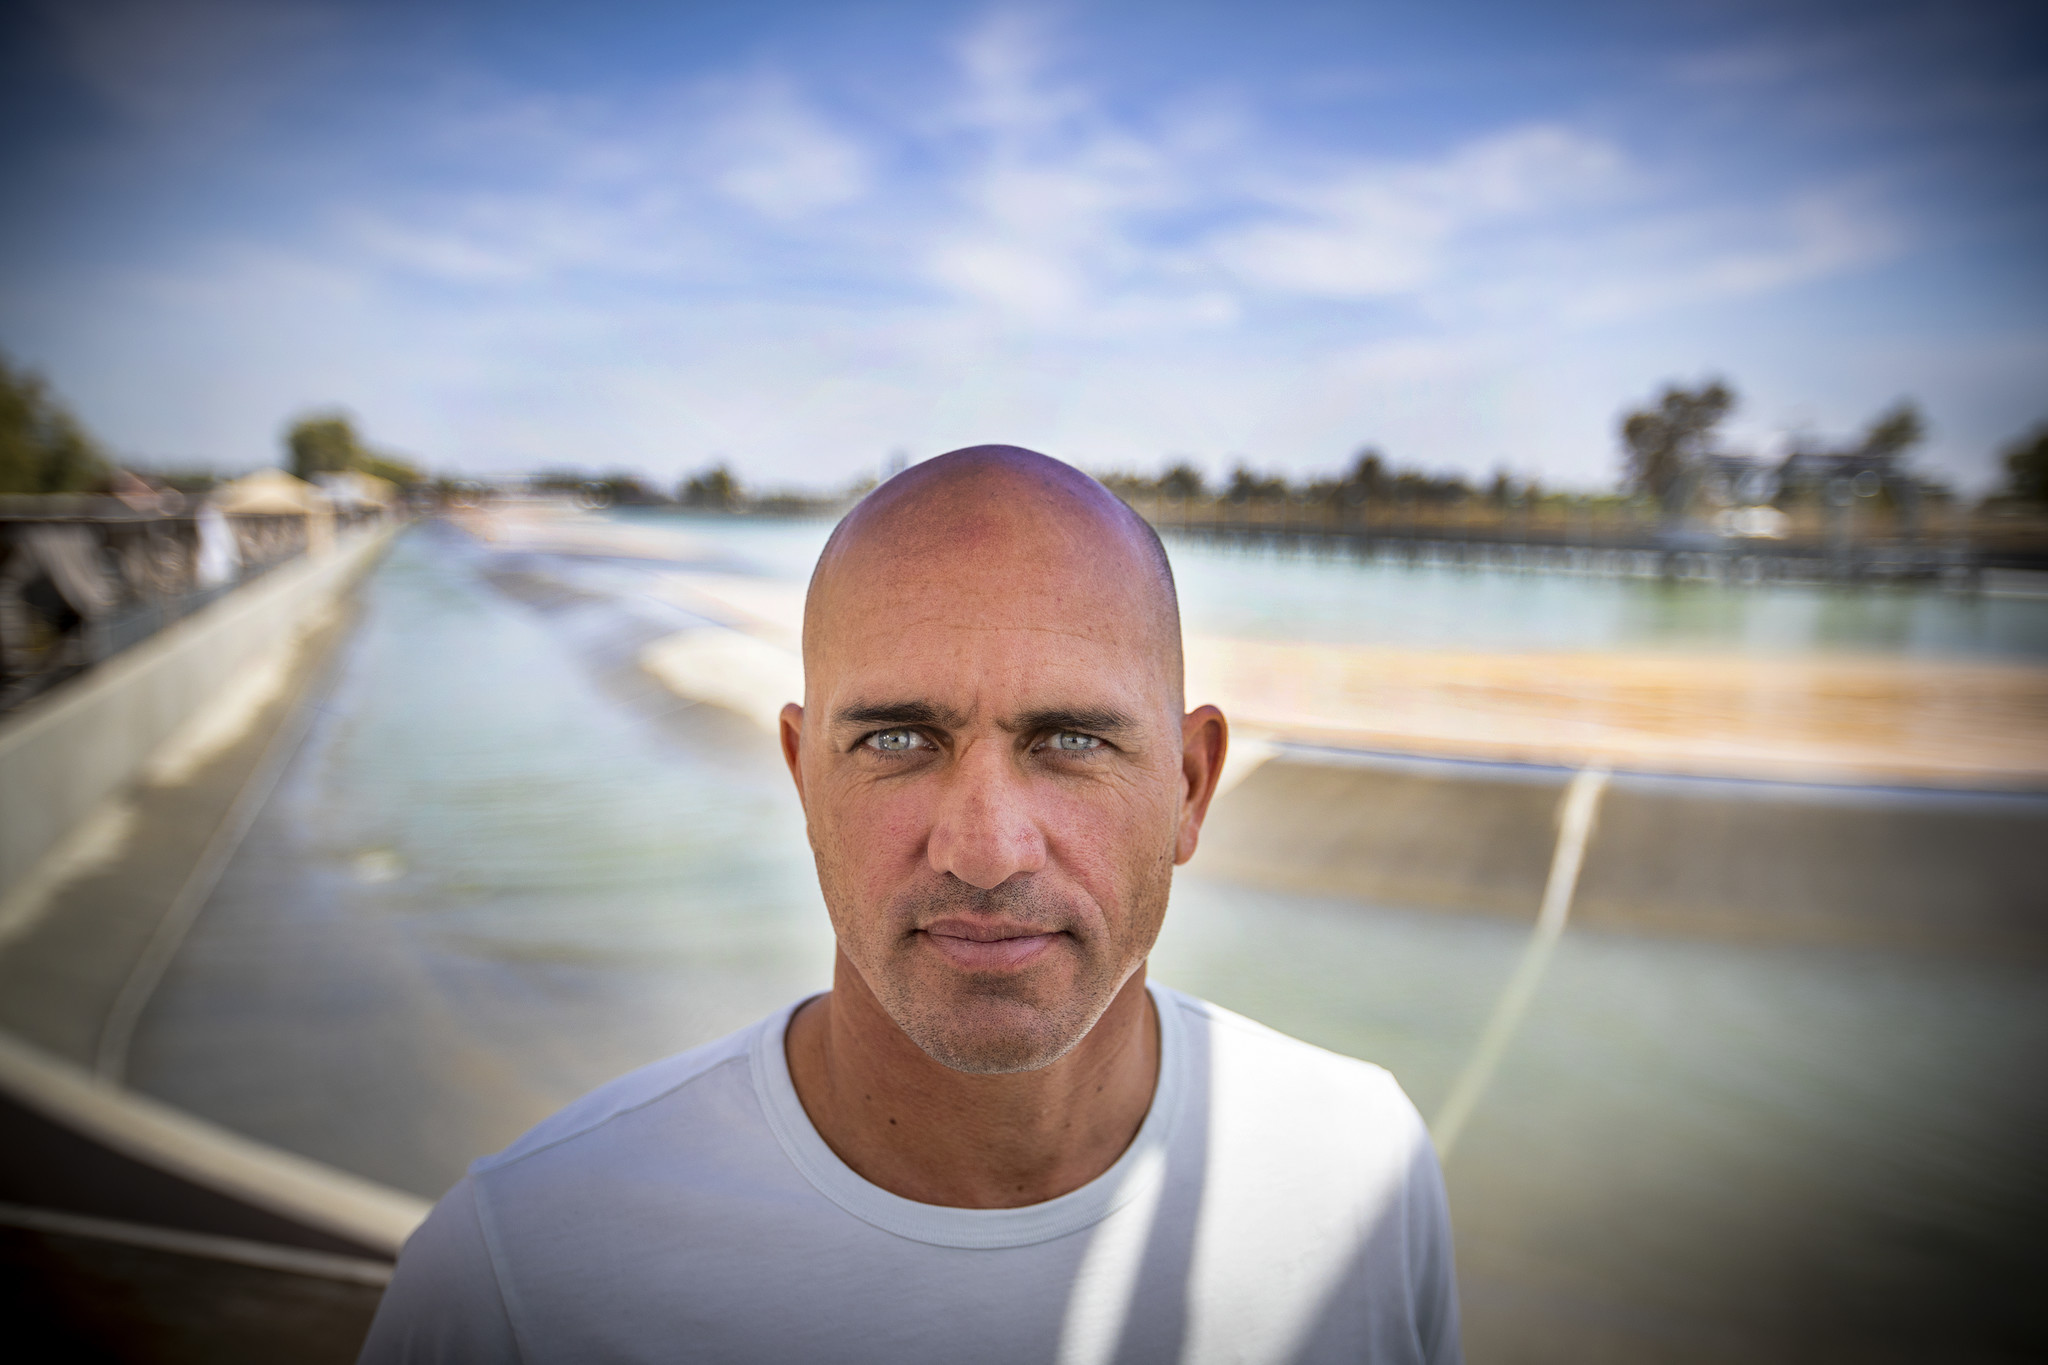 LEMOORE, CALIF. — FRIDAY, MAY 4, 2018: Kelly Slater, 11-time WSL Men's Champion, poses for a portra